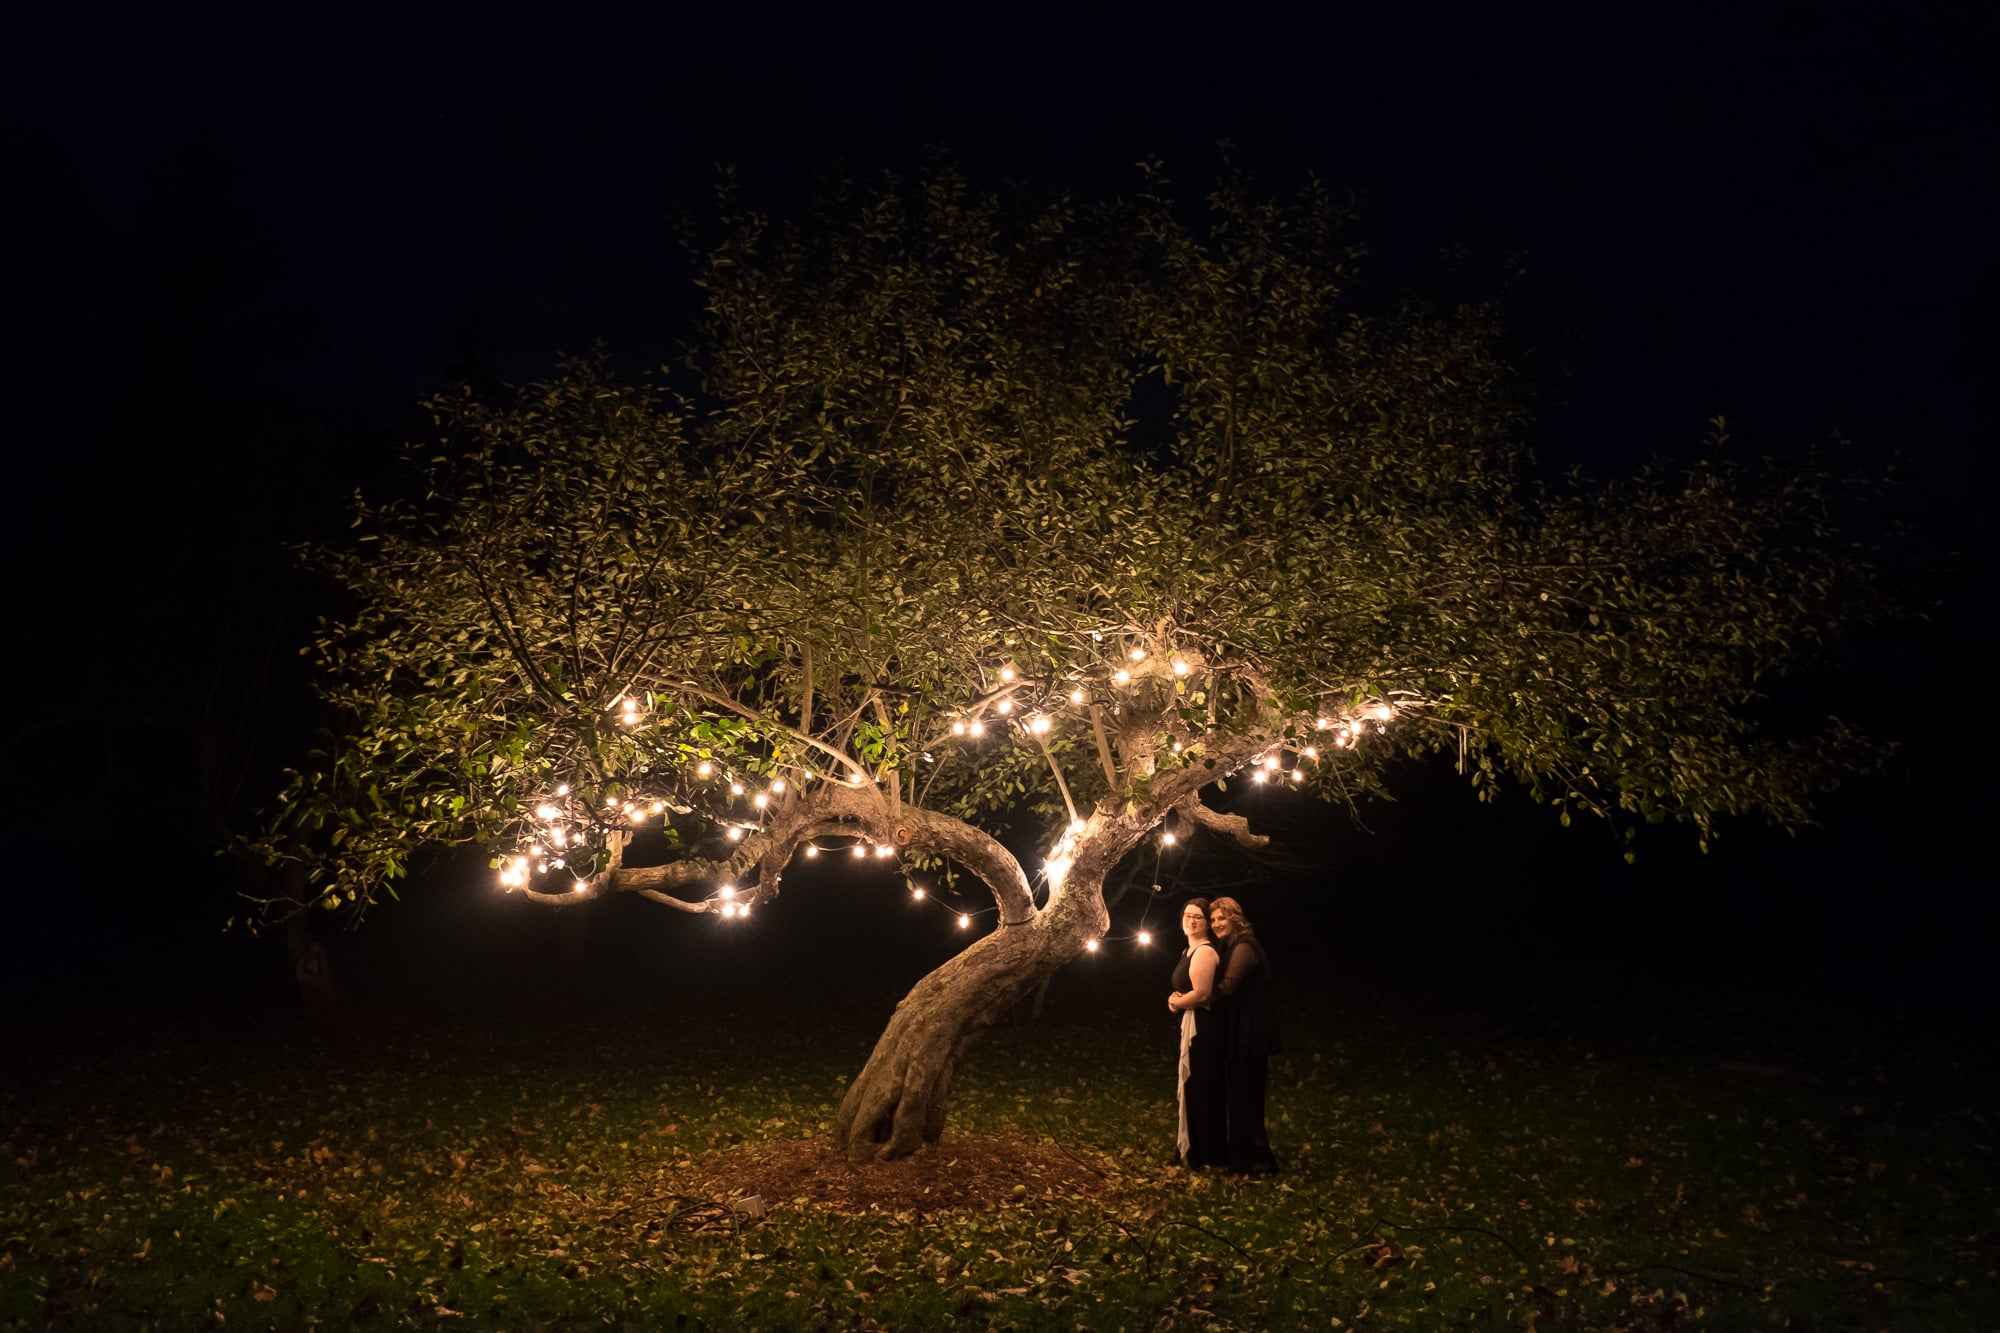 Renee + Senem pose for a nighttime portrait during their wedding reception at Langdon Hall.